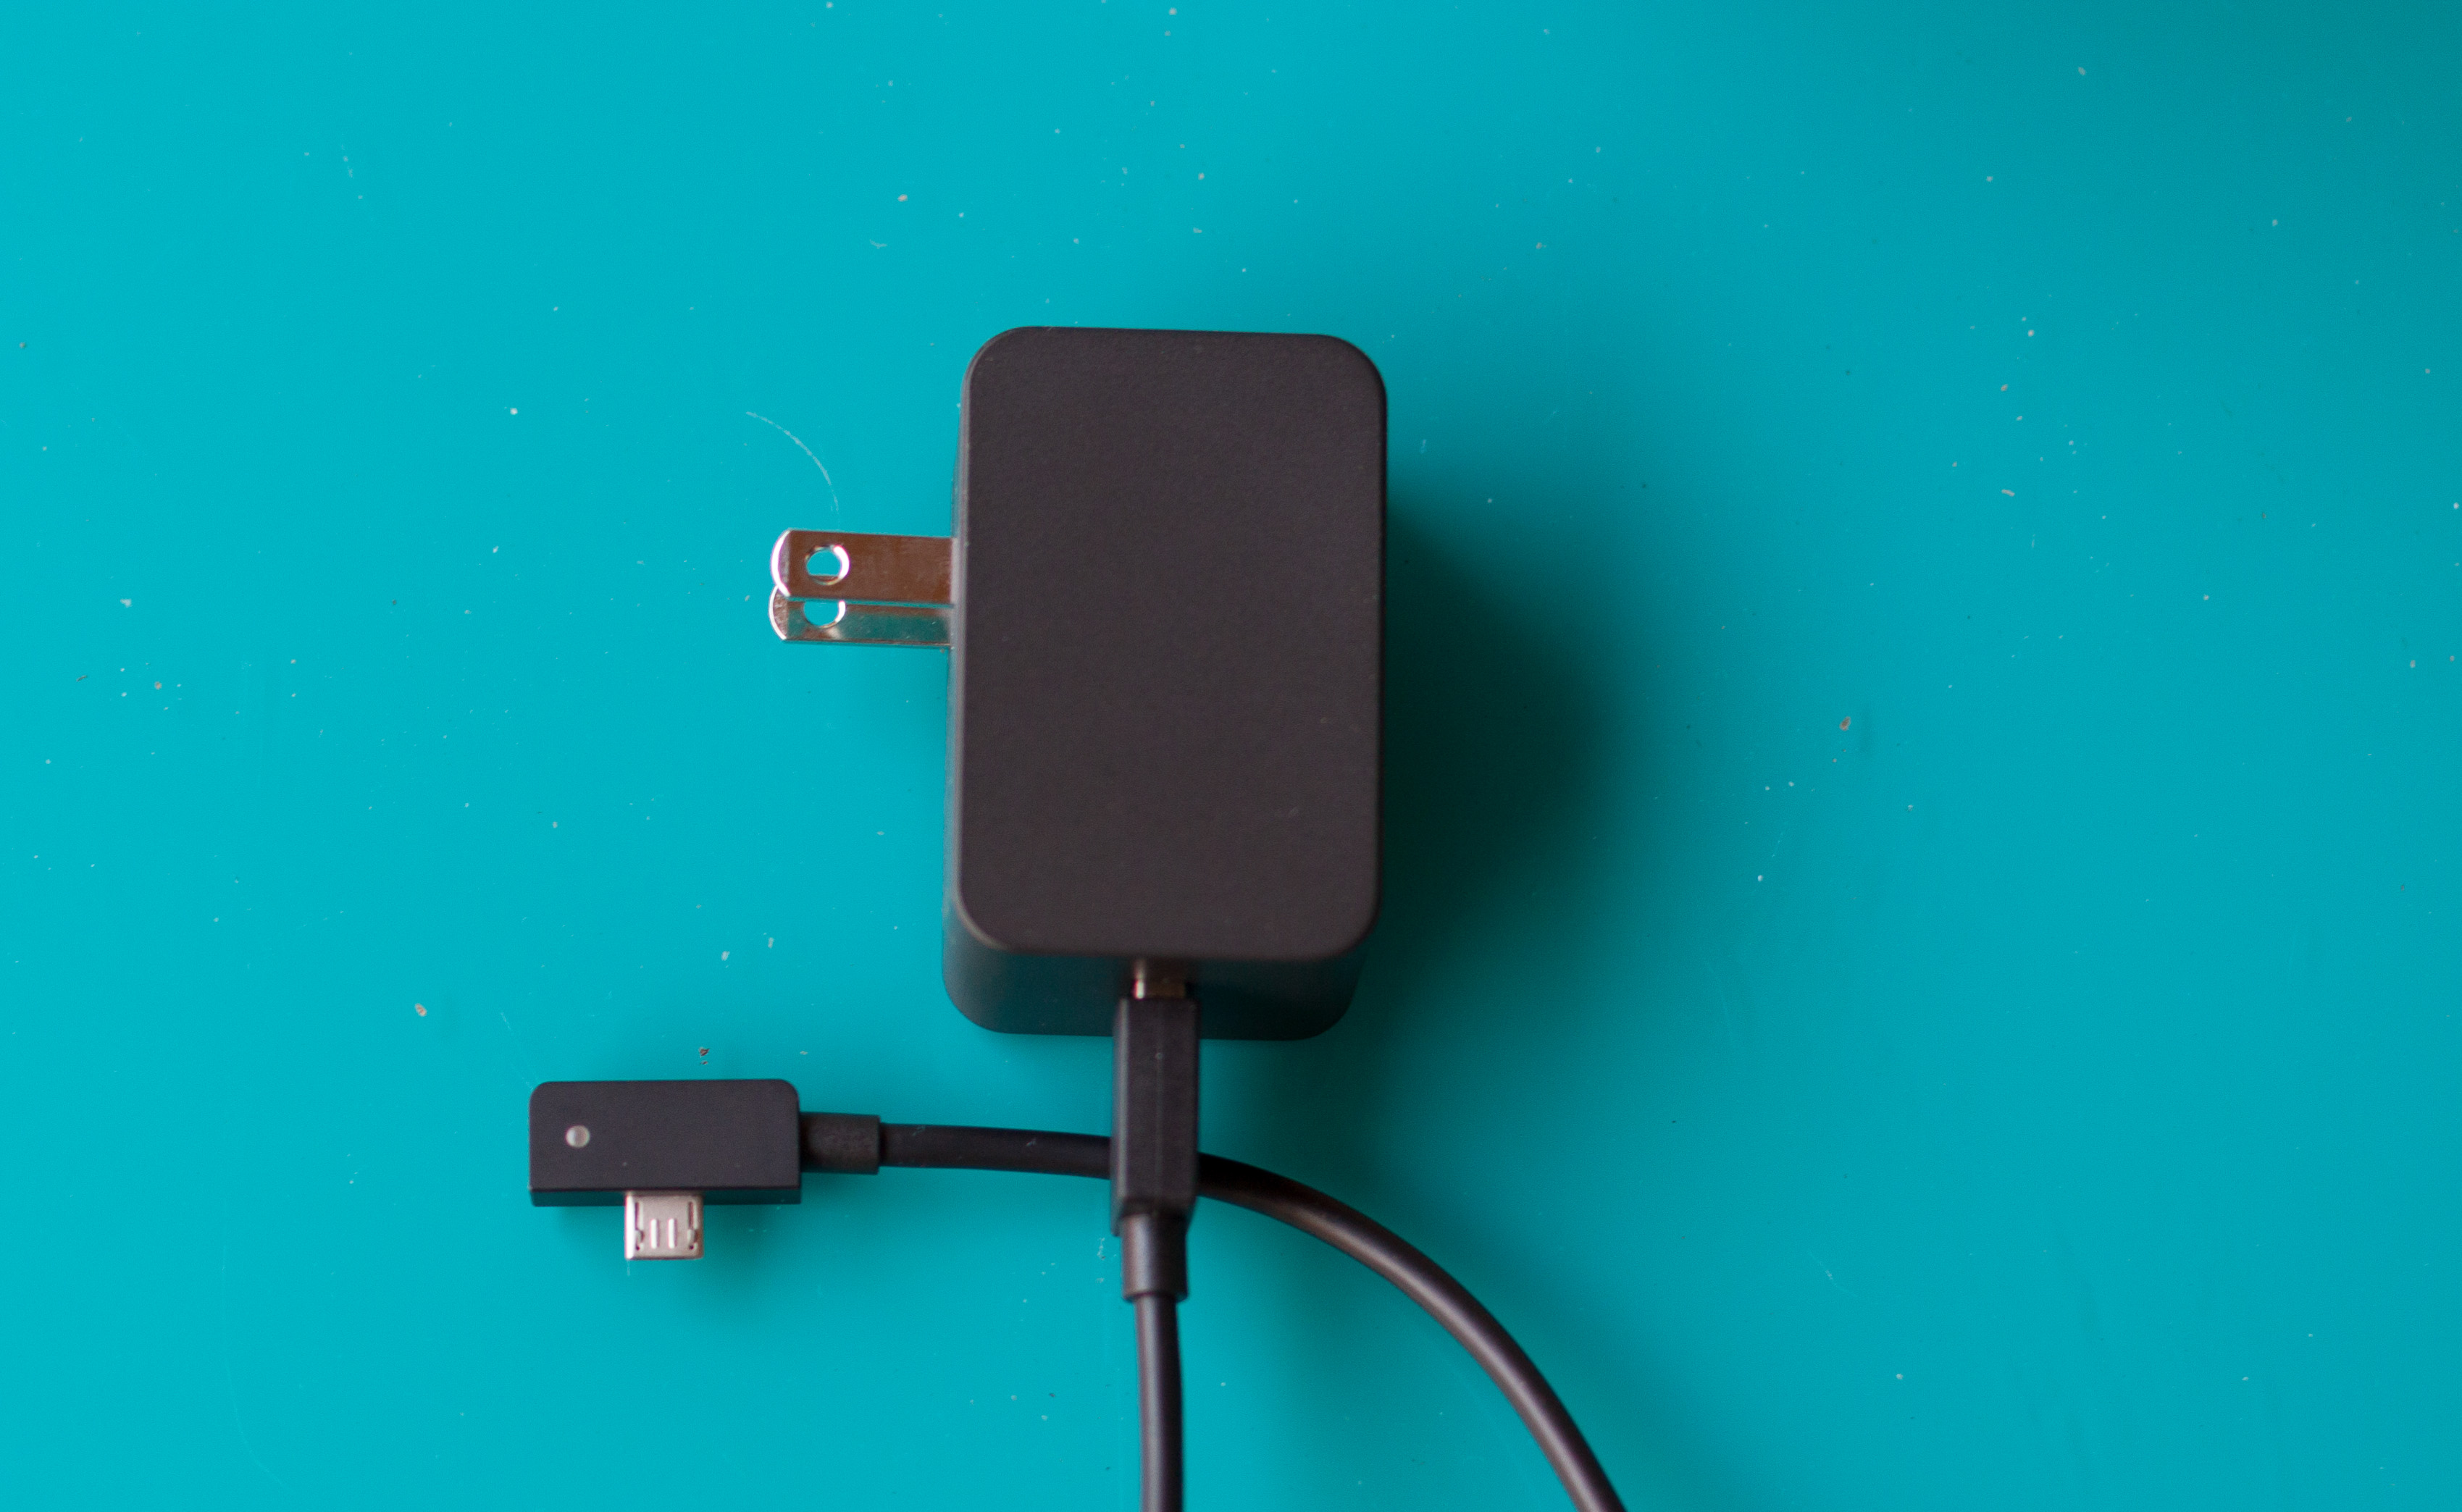 Yet another new Surface charger. This time, the connector is plain old micro-USB.